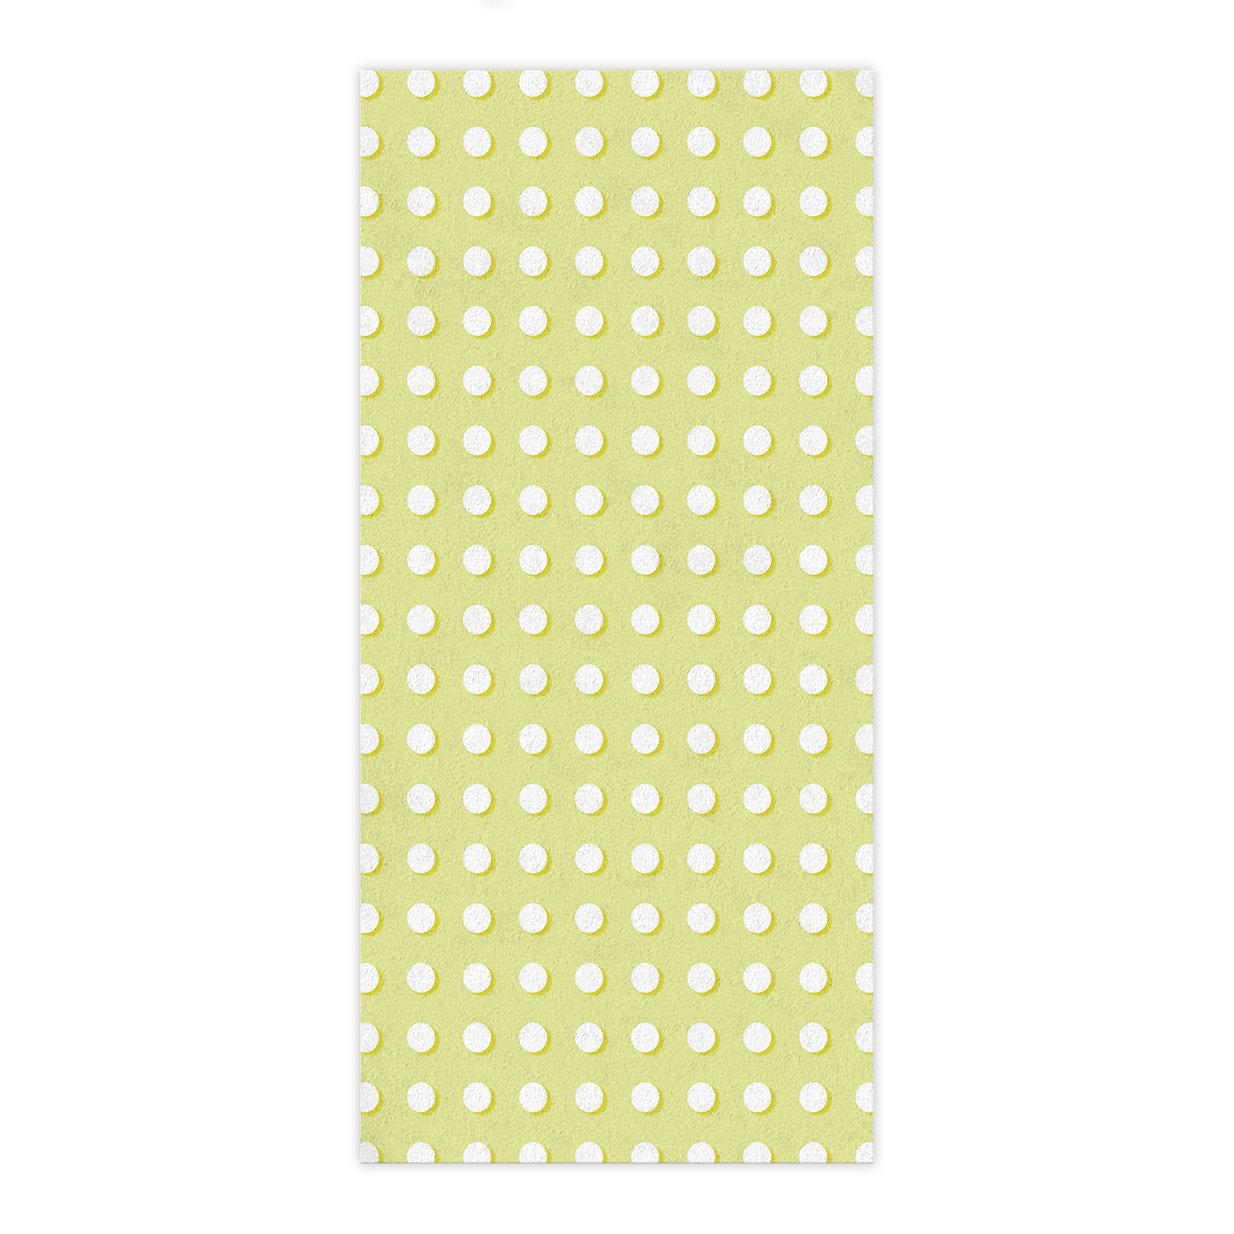 OxOHome Custom Bath Towel Quick Dry Absorbent Towels Spa Shower Wrap for College Dorms, Gyms, Locker Rooms, 27.5 x 55 inch - Yellow Polka Dot Geometric